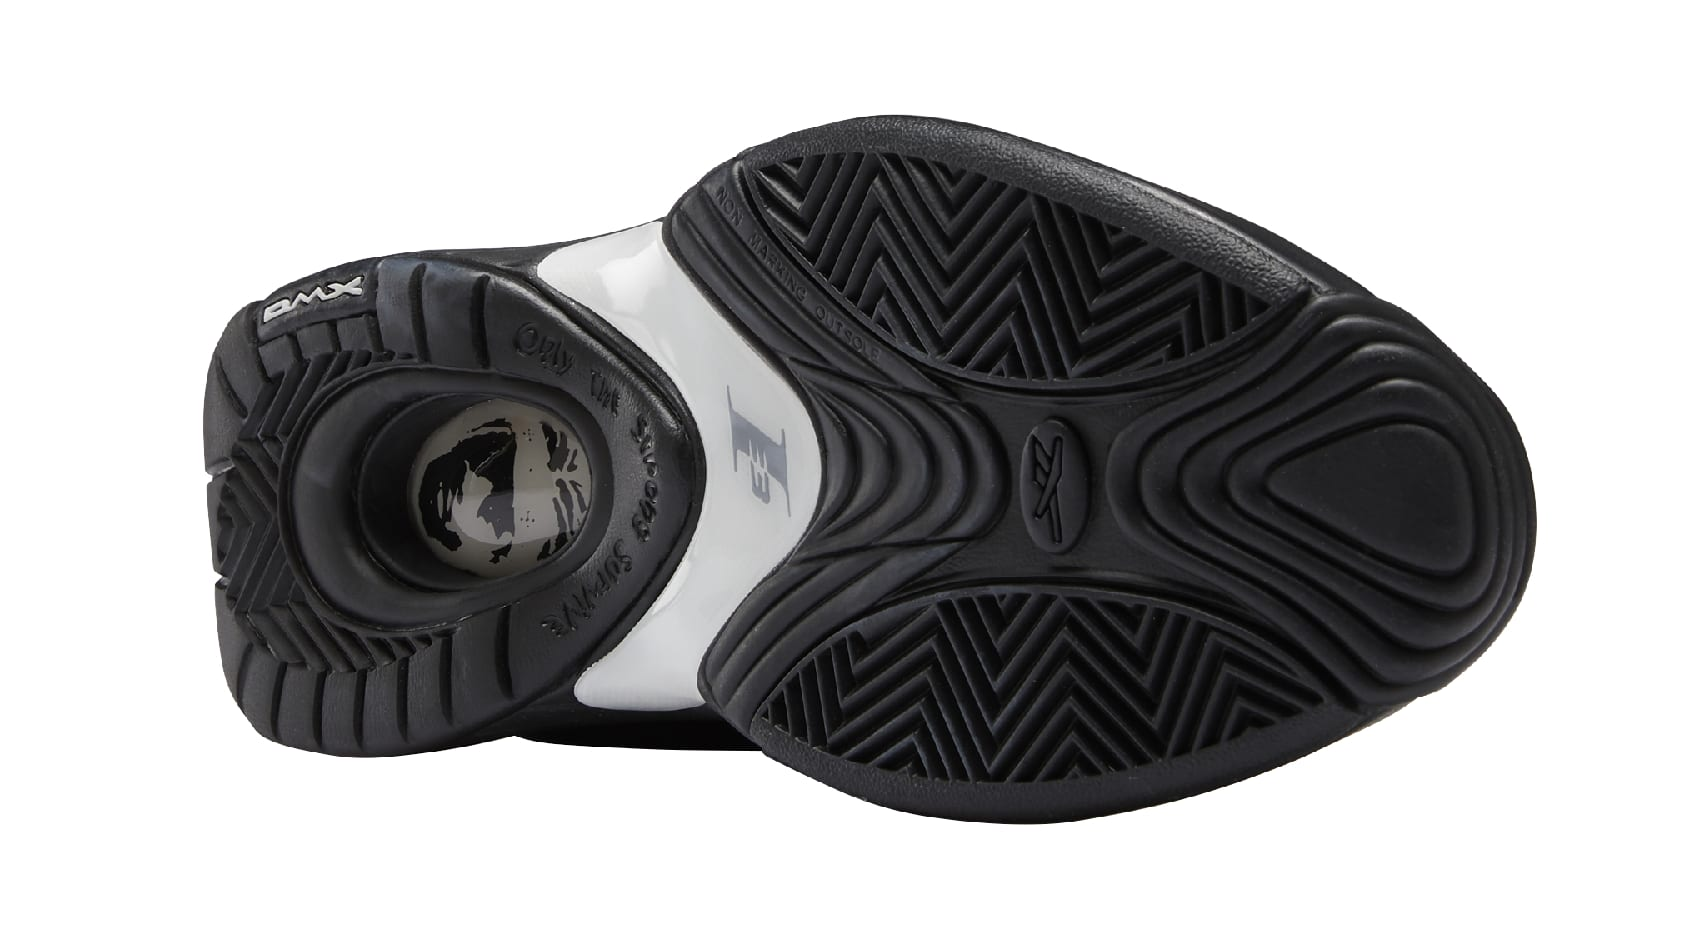 Reebok Answer 4 'Stepover' G55111 Outsole